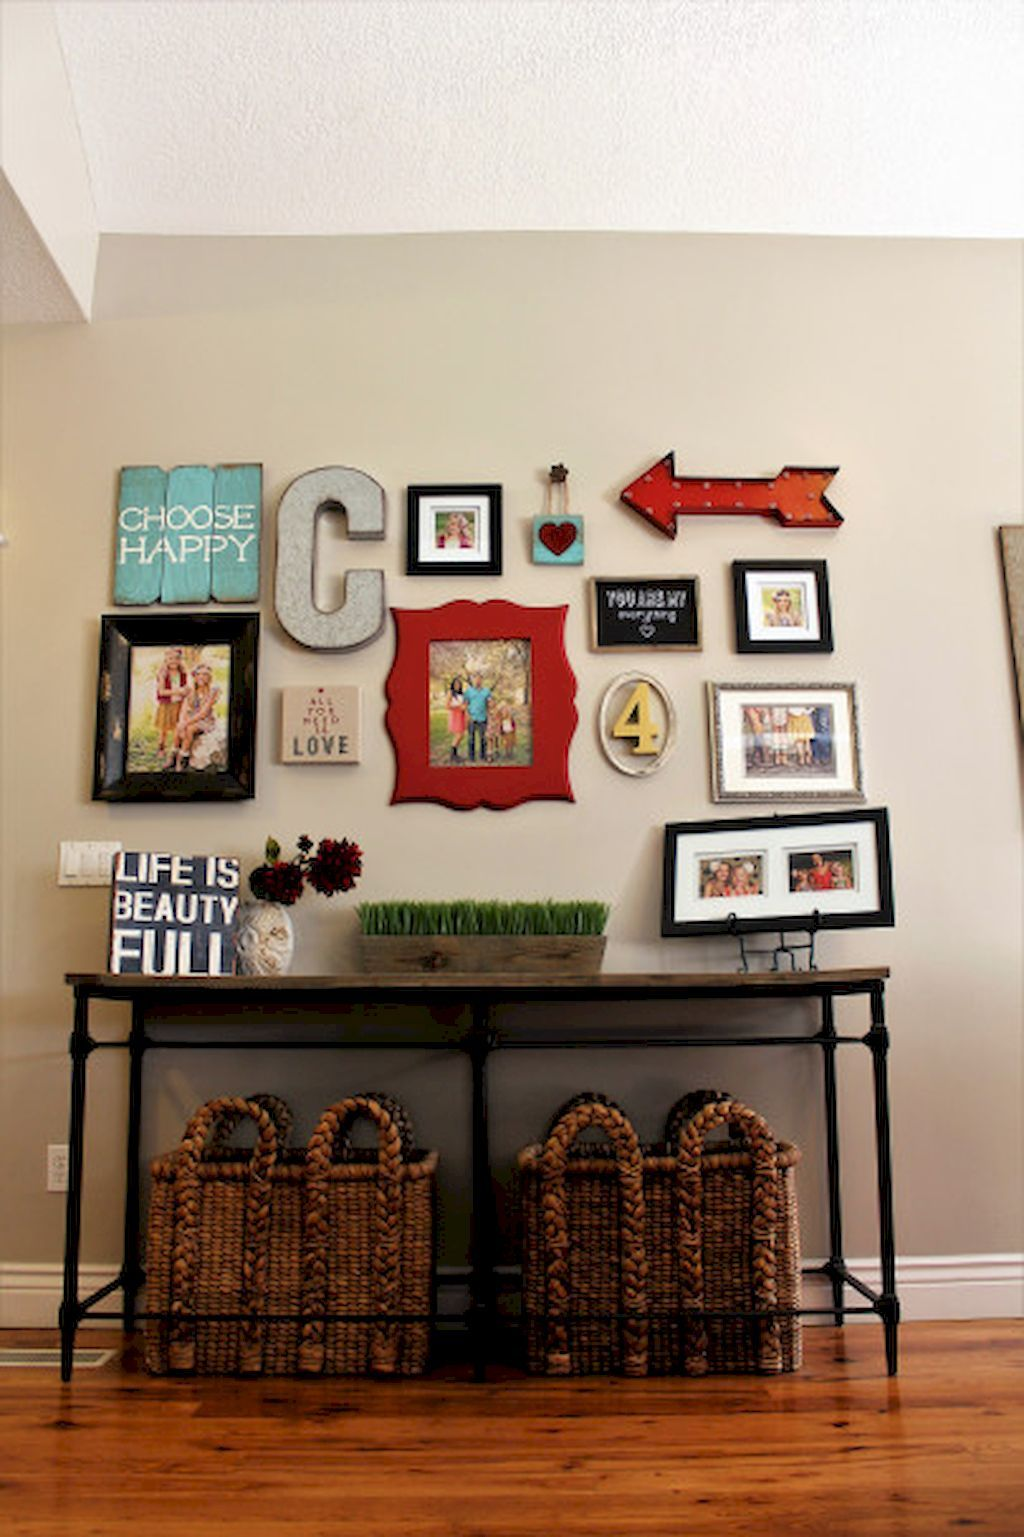 50 Beautiful Gallery Wall Ideas to Show Your Photos